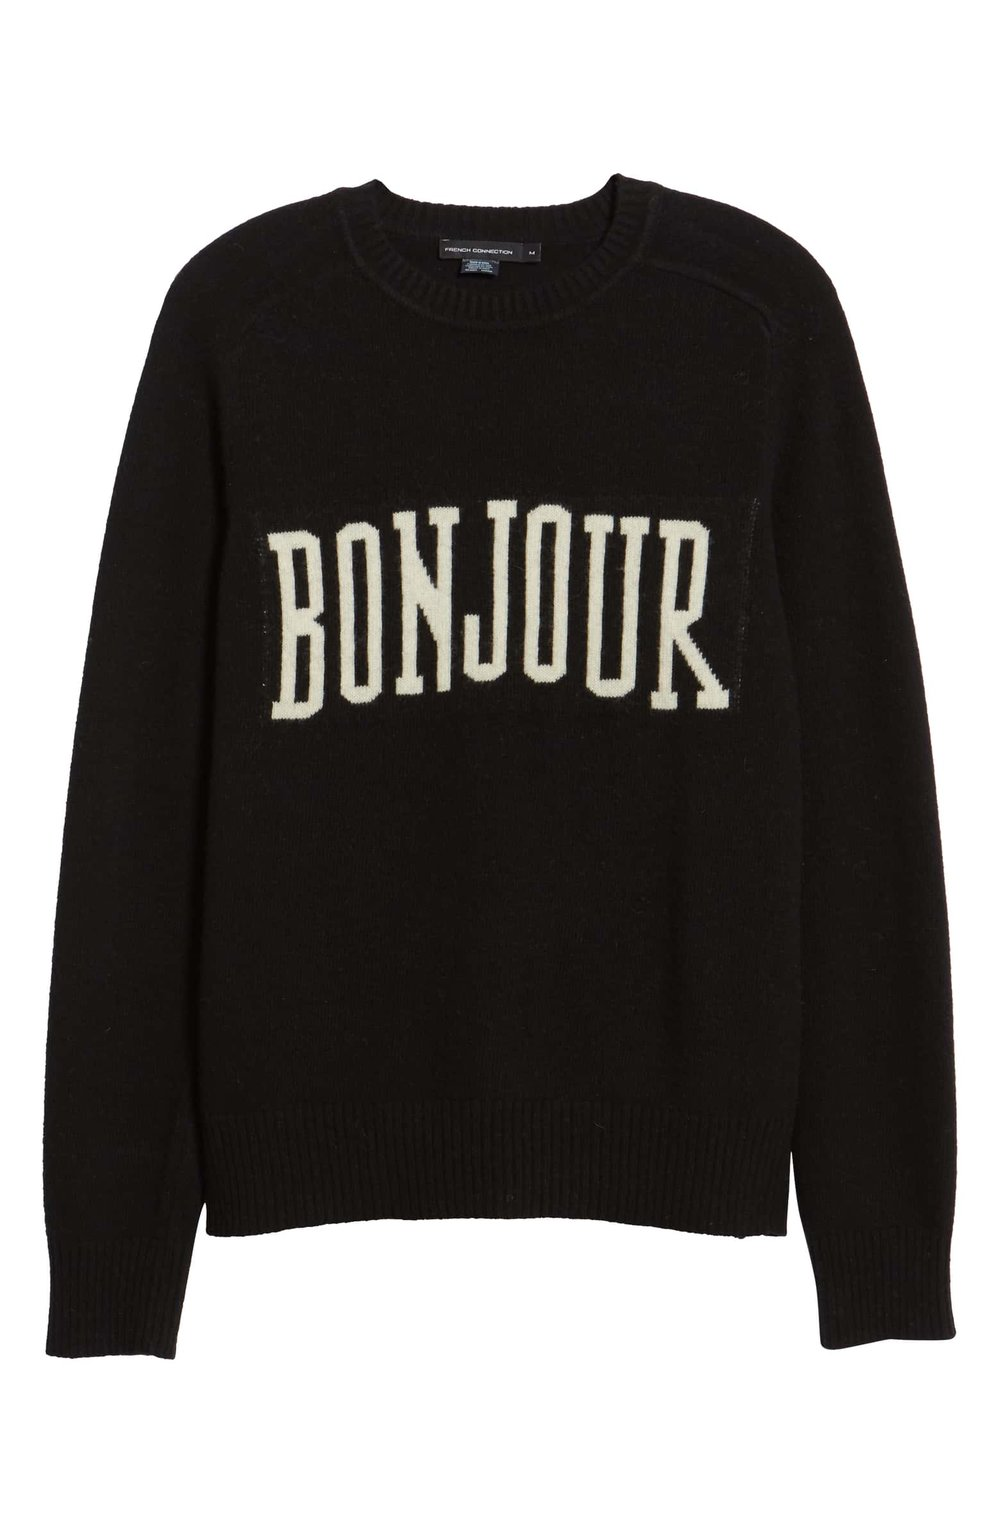 French Connection Black and White Bonjour Sweater.jpeg